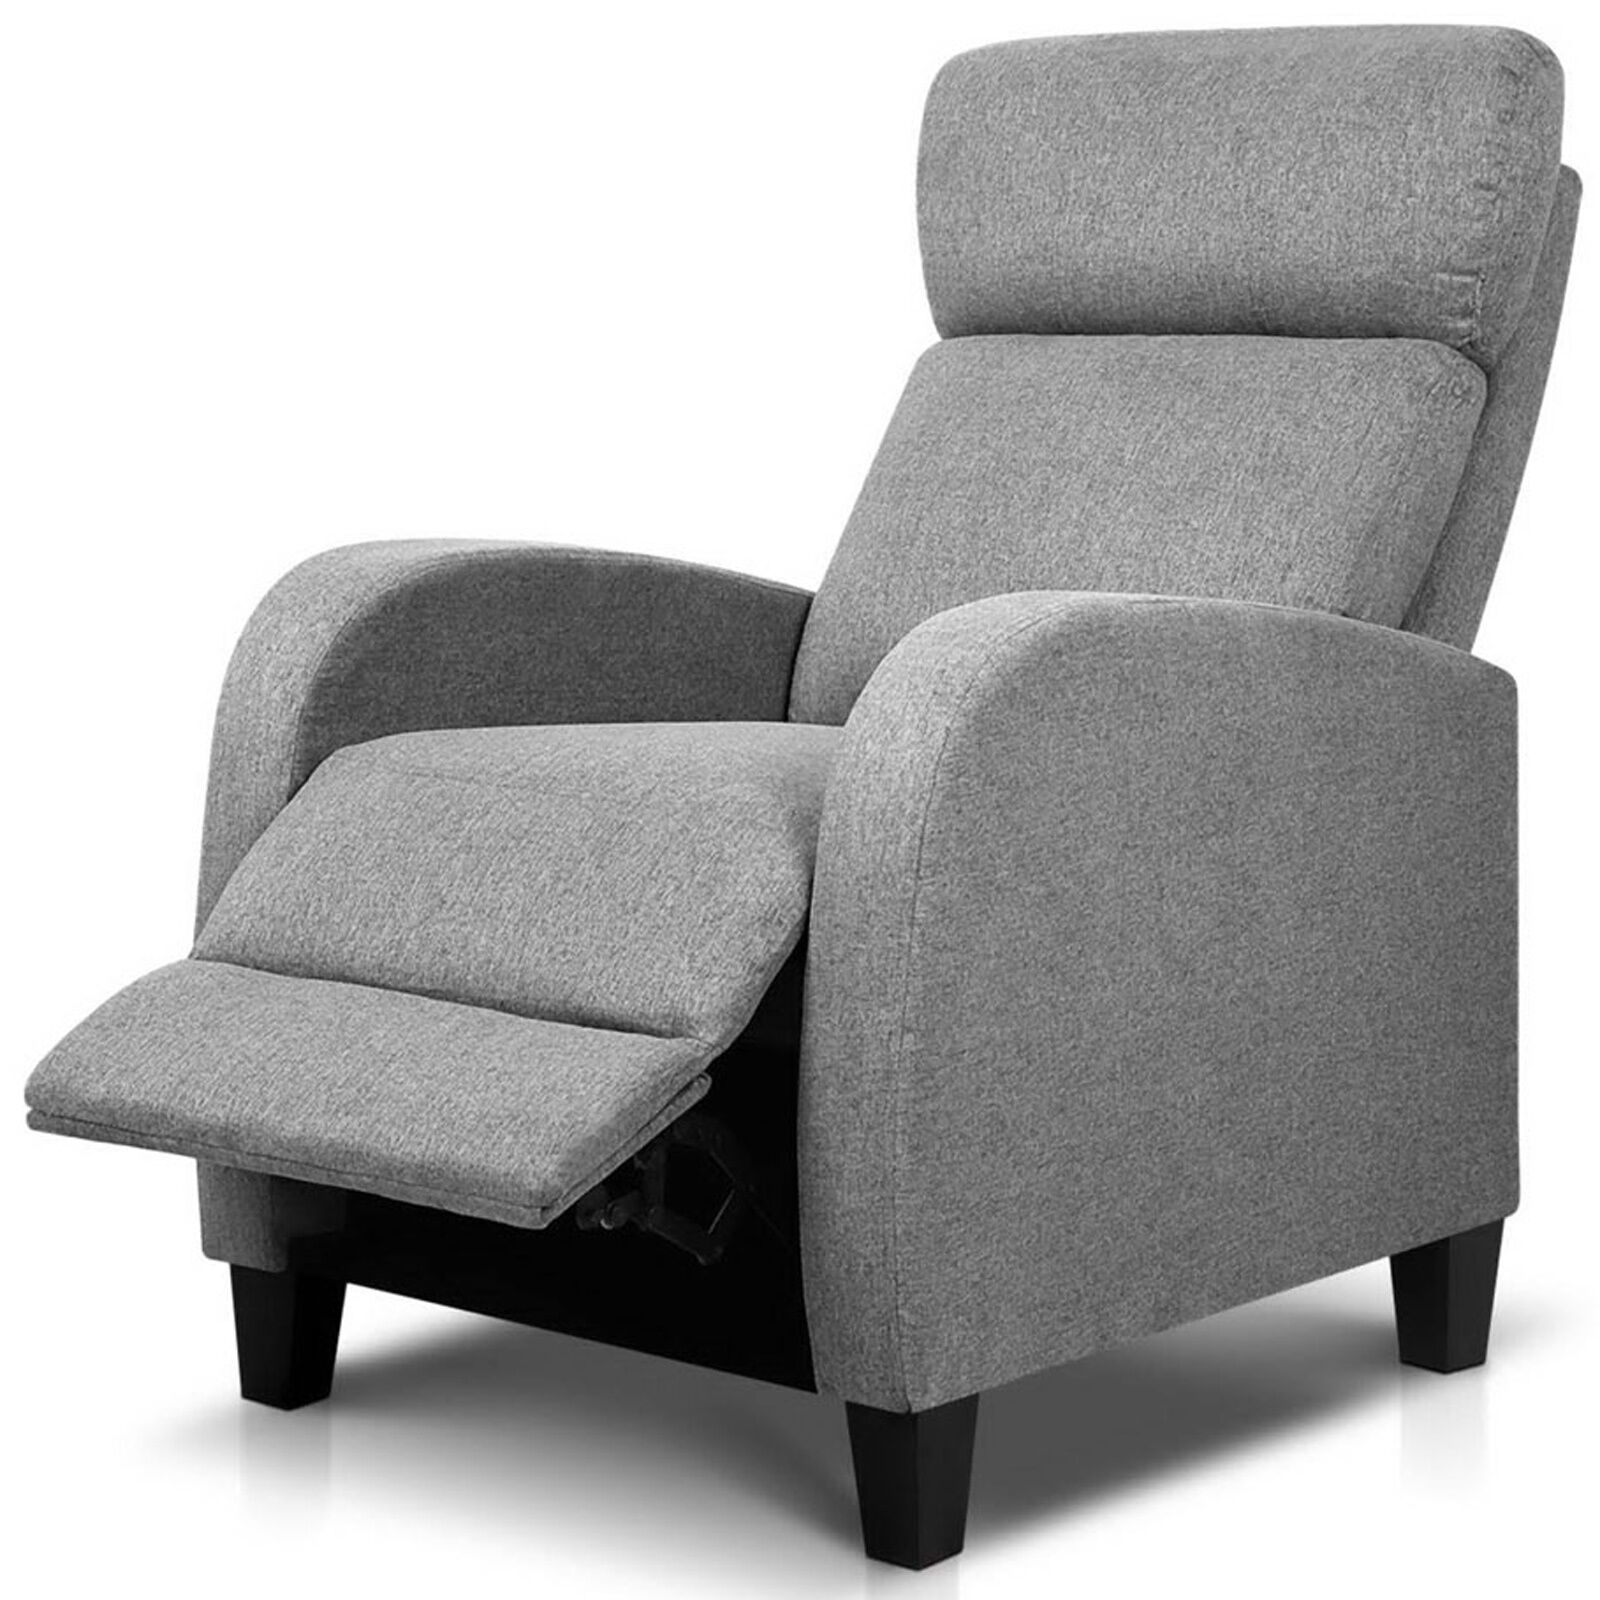 Linen fabric high back armchair recliner lounge sofa couch for Sofa armchair